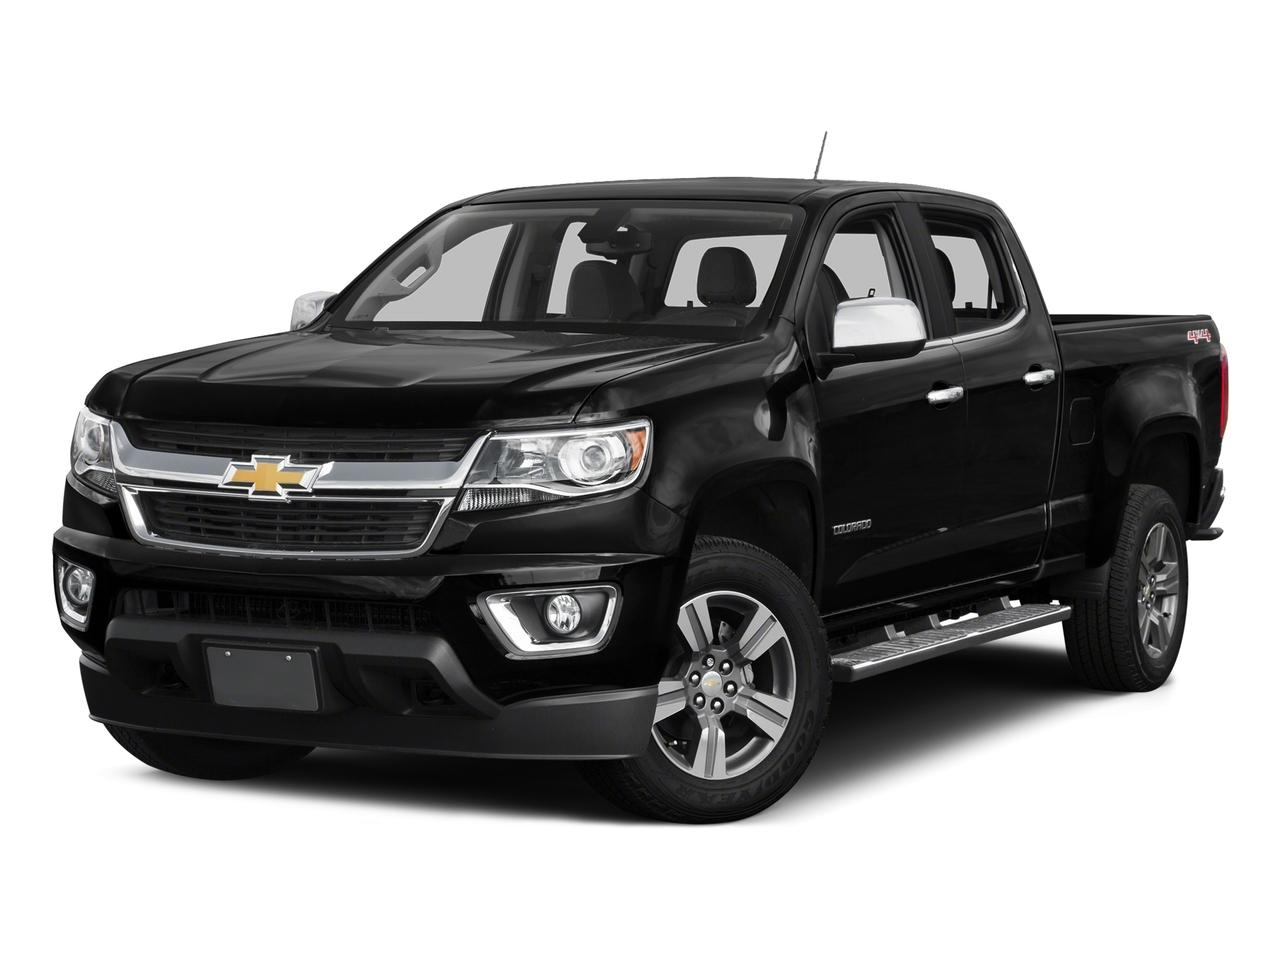 2016 Chevrolet Colorado Vehicle Photo in Beachwood, OH 44122